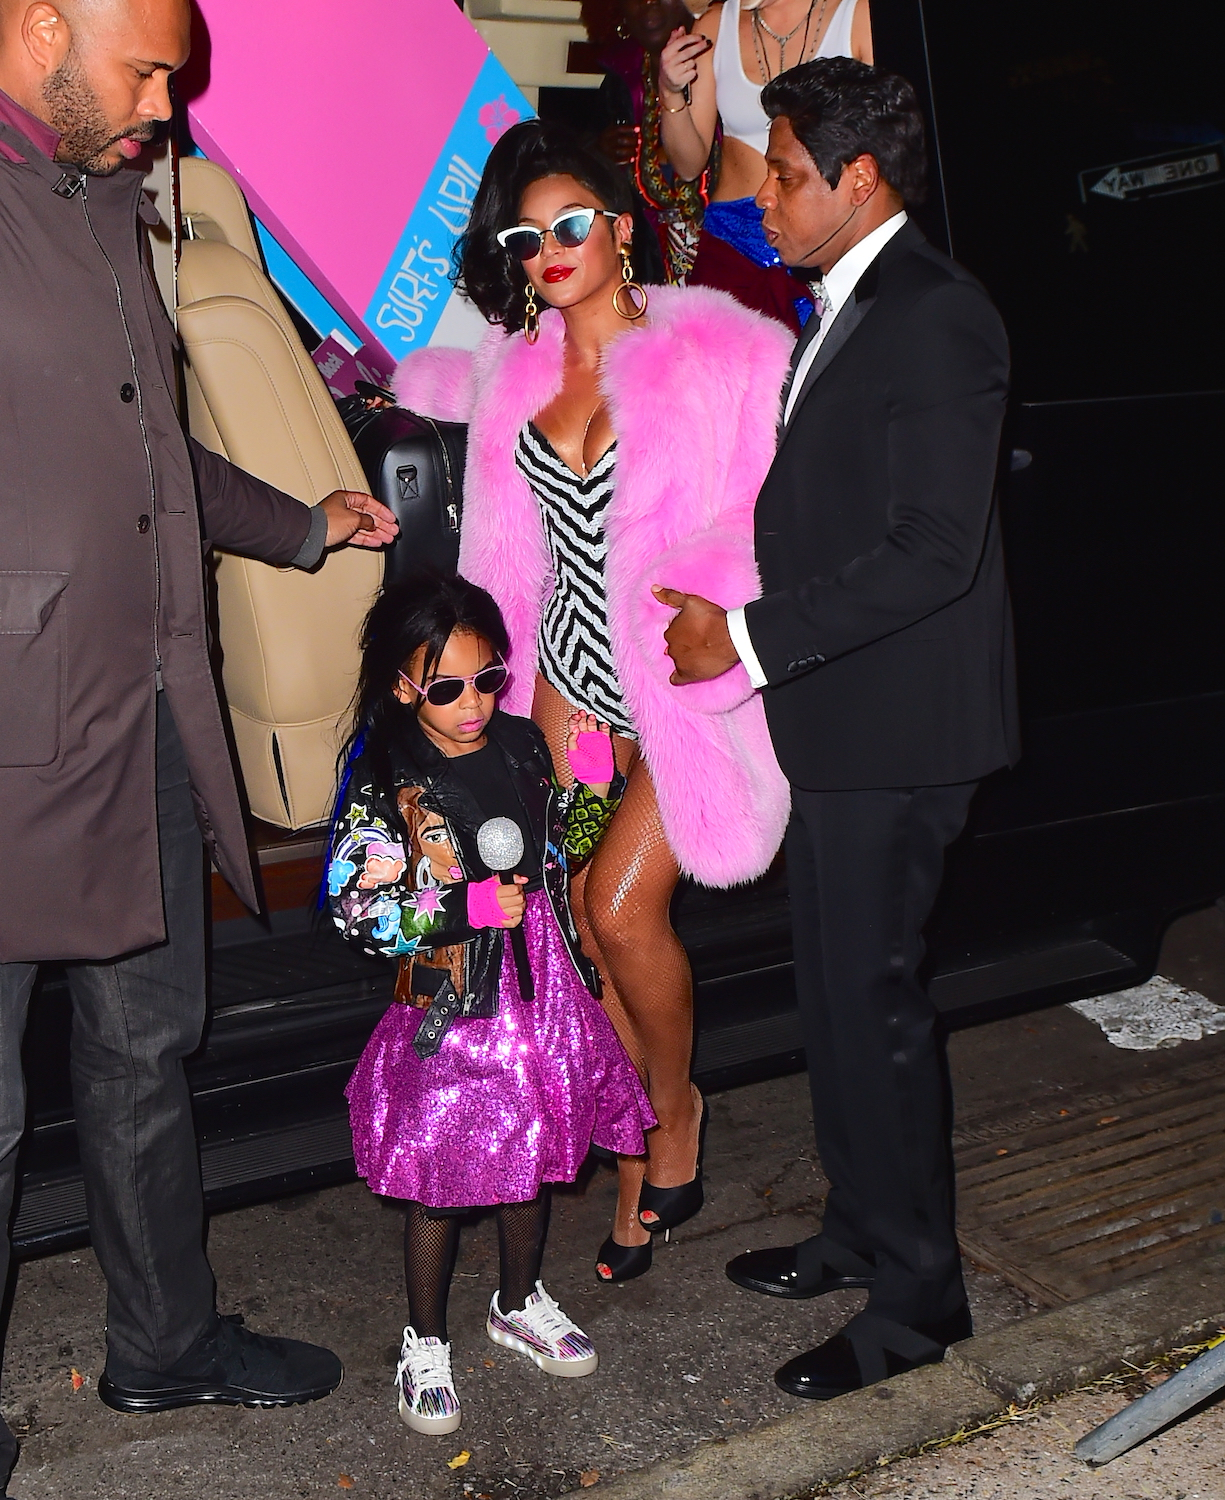 Beyonce and Jay Z were spotted arriving to their Annual Halloween Party in NYC . The couple dressed as a super stylish Black Barbie and Black Ken Doll set. Beyonce stunned in a Pink Fur Coat and a striped Bodysuit. She wore a mirrored pair of sunglasses as she walked with her Husband Jay Z and cute daughter Blue Ivy into the party. They were joined by Kelly Rowland as well, who dressed up as RUN DMC <P> Pictured: Beyonce, Jay Z , <B>Ref: SPL1384685  011116  </B><BR/> Picture by: 247PAPS.TV / Splash News<BR/> </P><P> <B>Splash News and Pictures</B><BR/> Los Angeles:310-821-2666<BR/> New York:212-619-2666<BR/> London:870-934-2666<BR/> <span id=